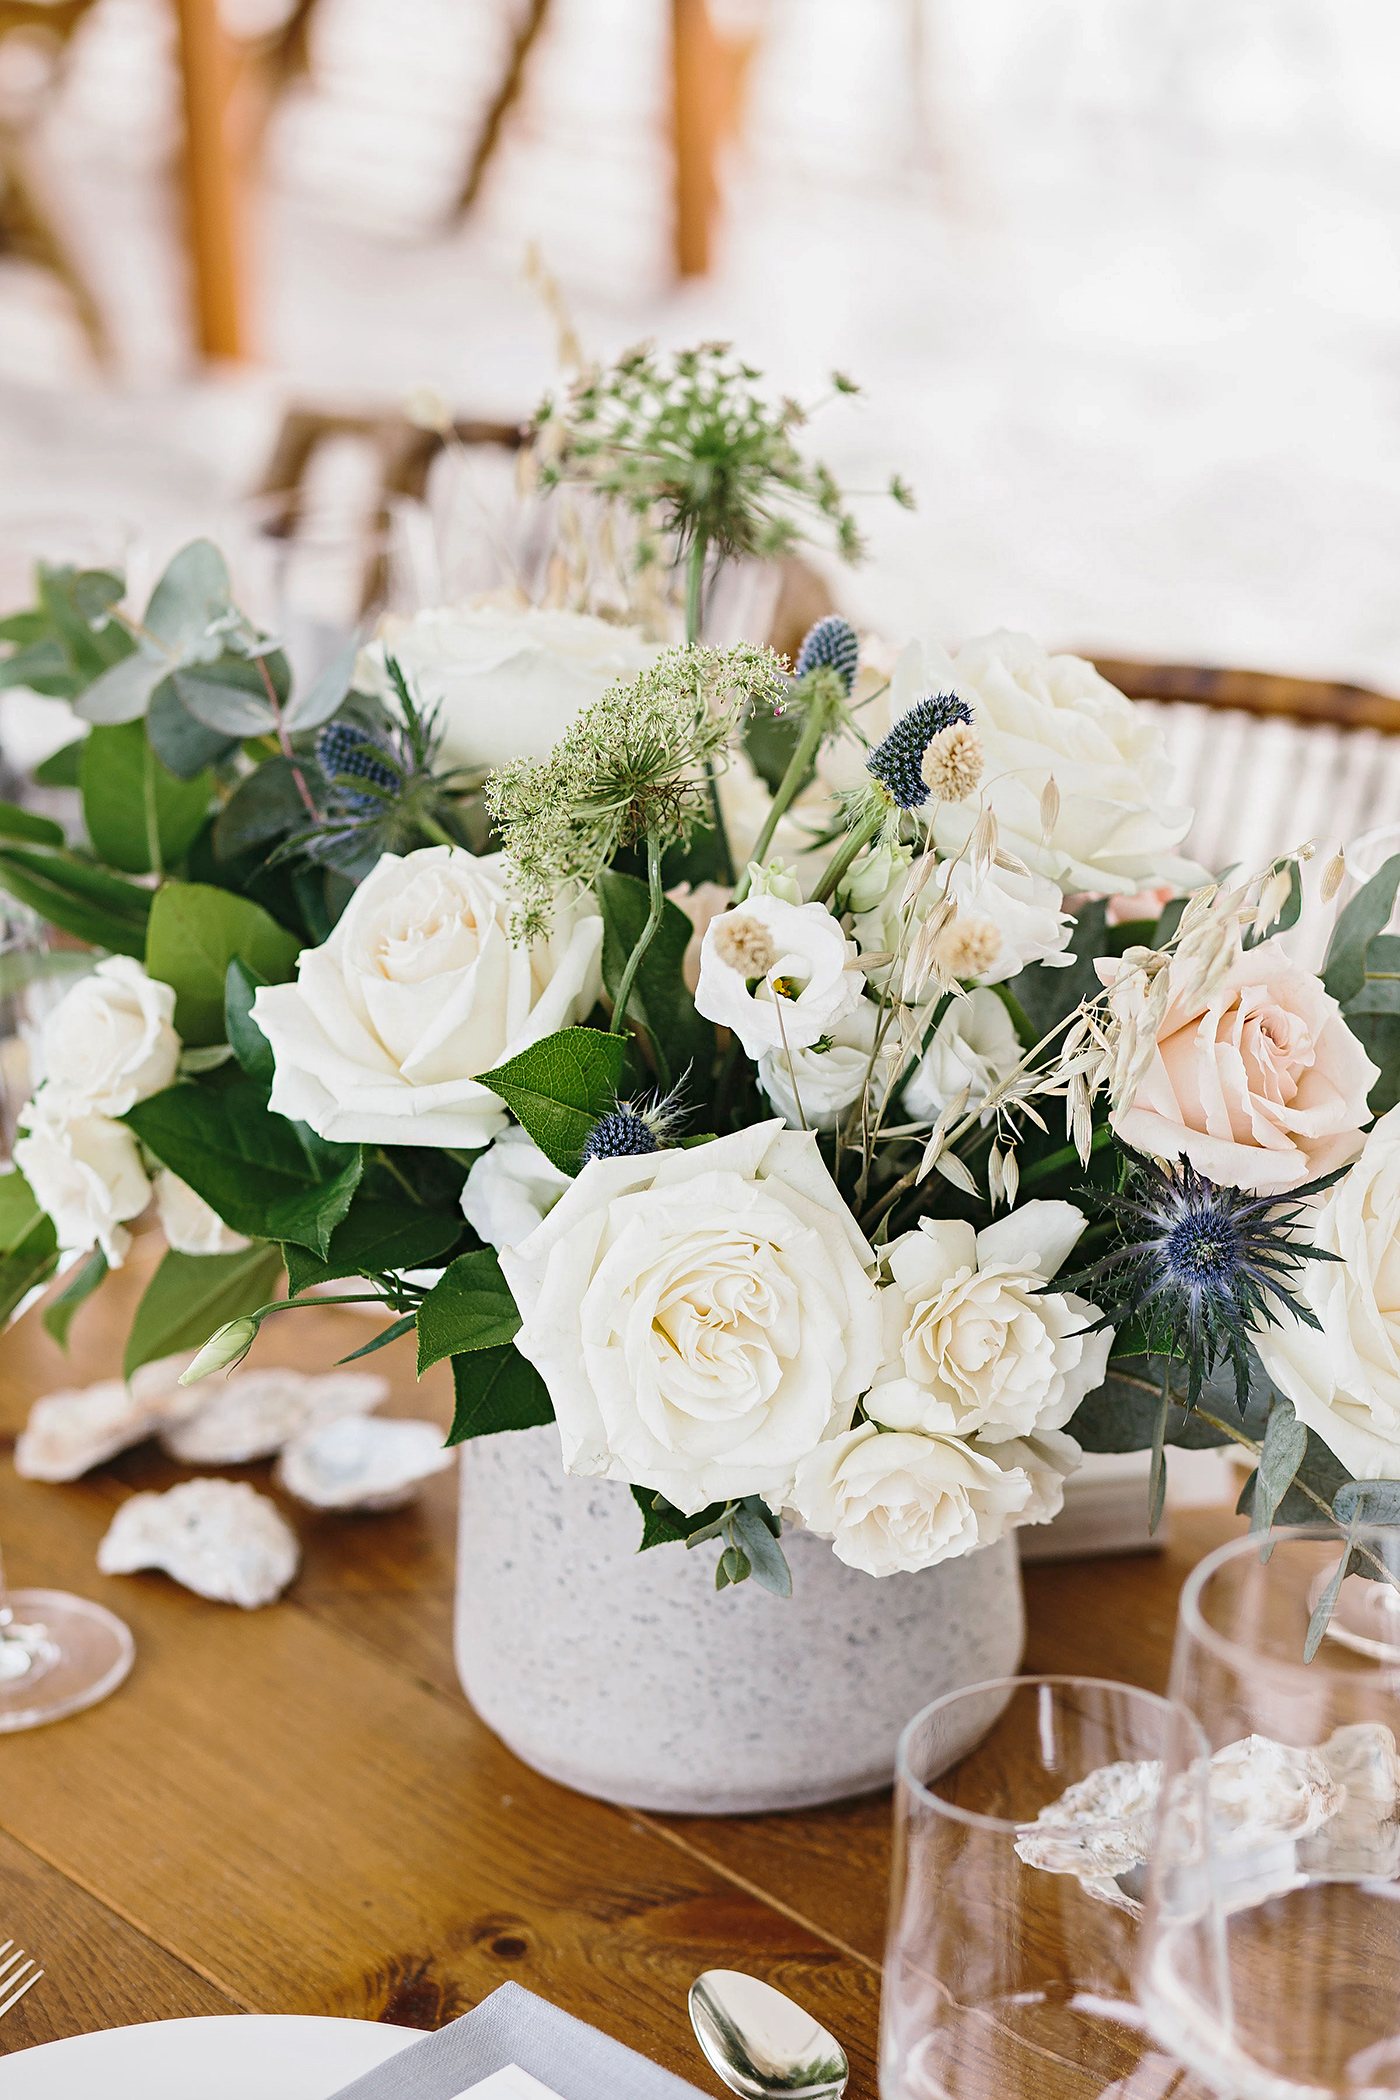 white rose wedding centerpiece on table